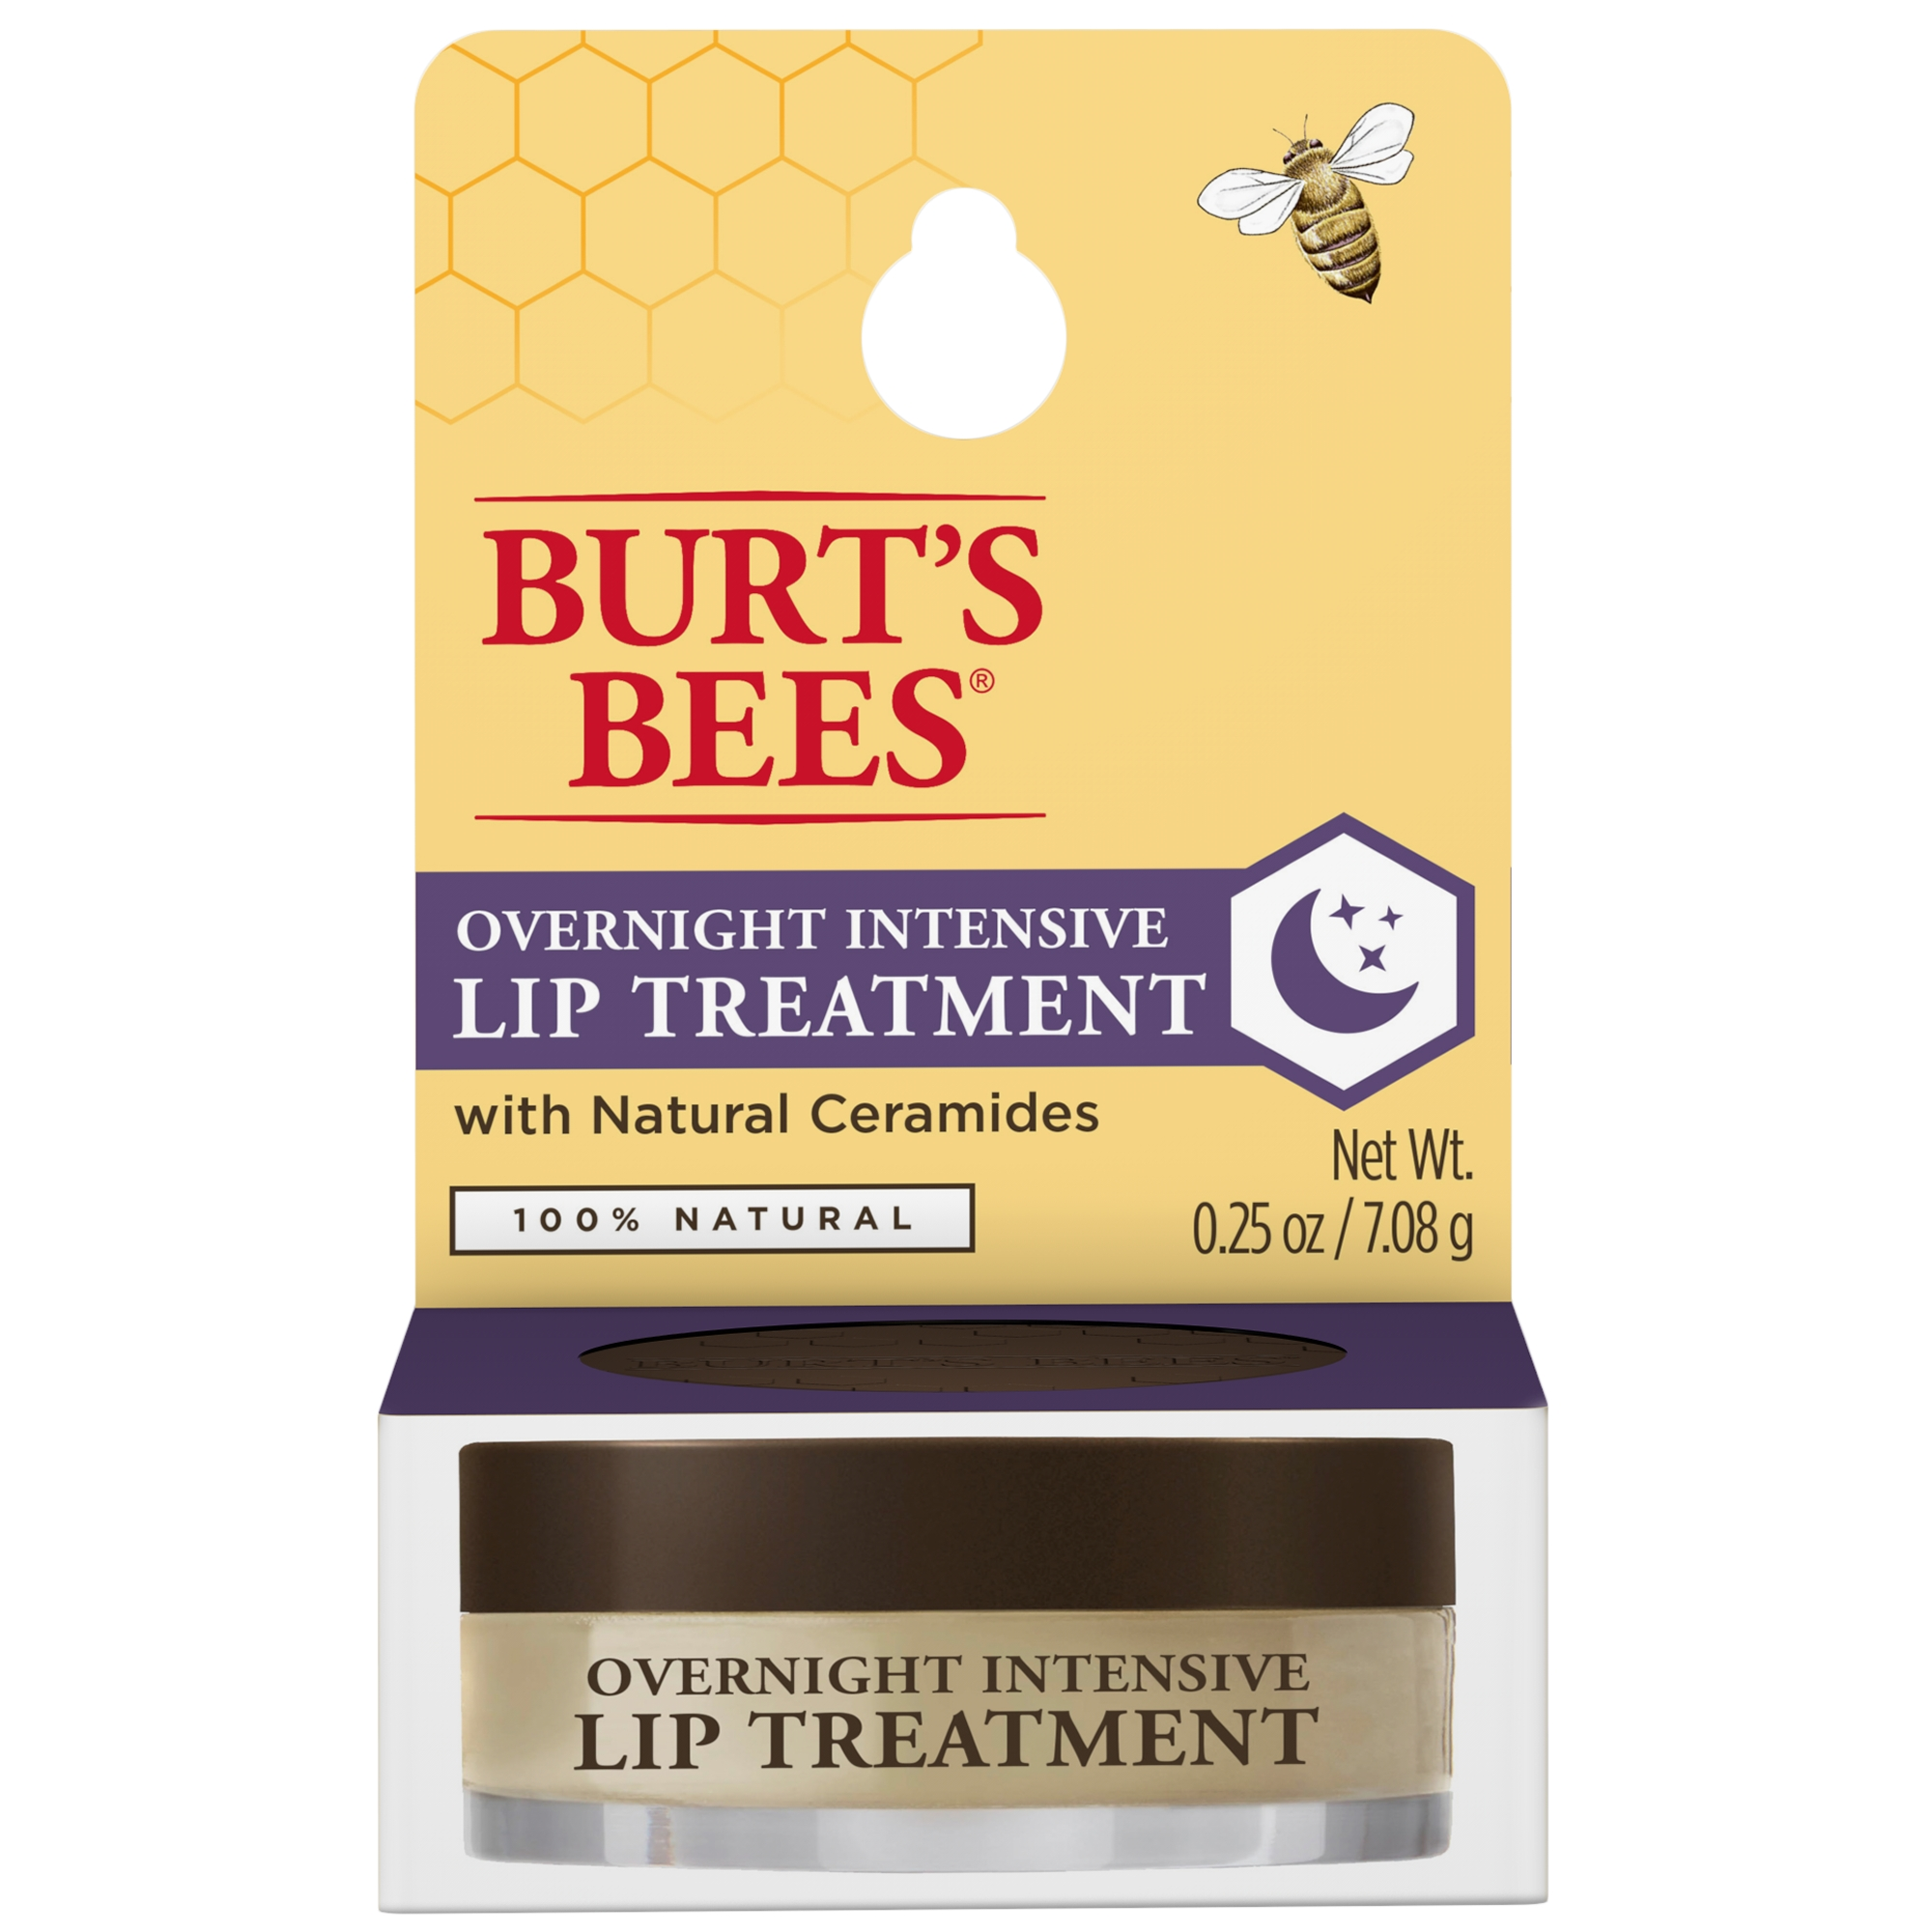 Burt's Bees 100% Natural Overnight Intensive Lip Treatment, Ultra-Conditioning Lip Care - 0.25 oz